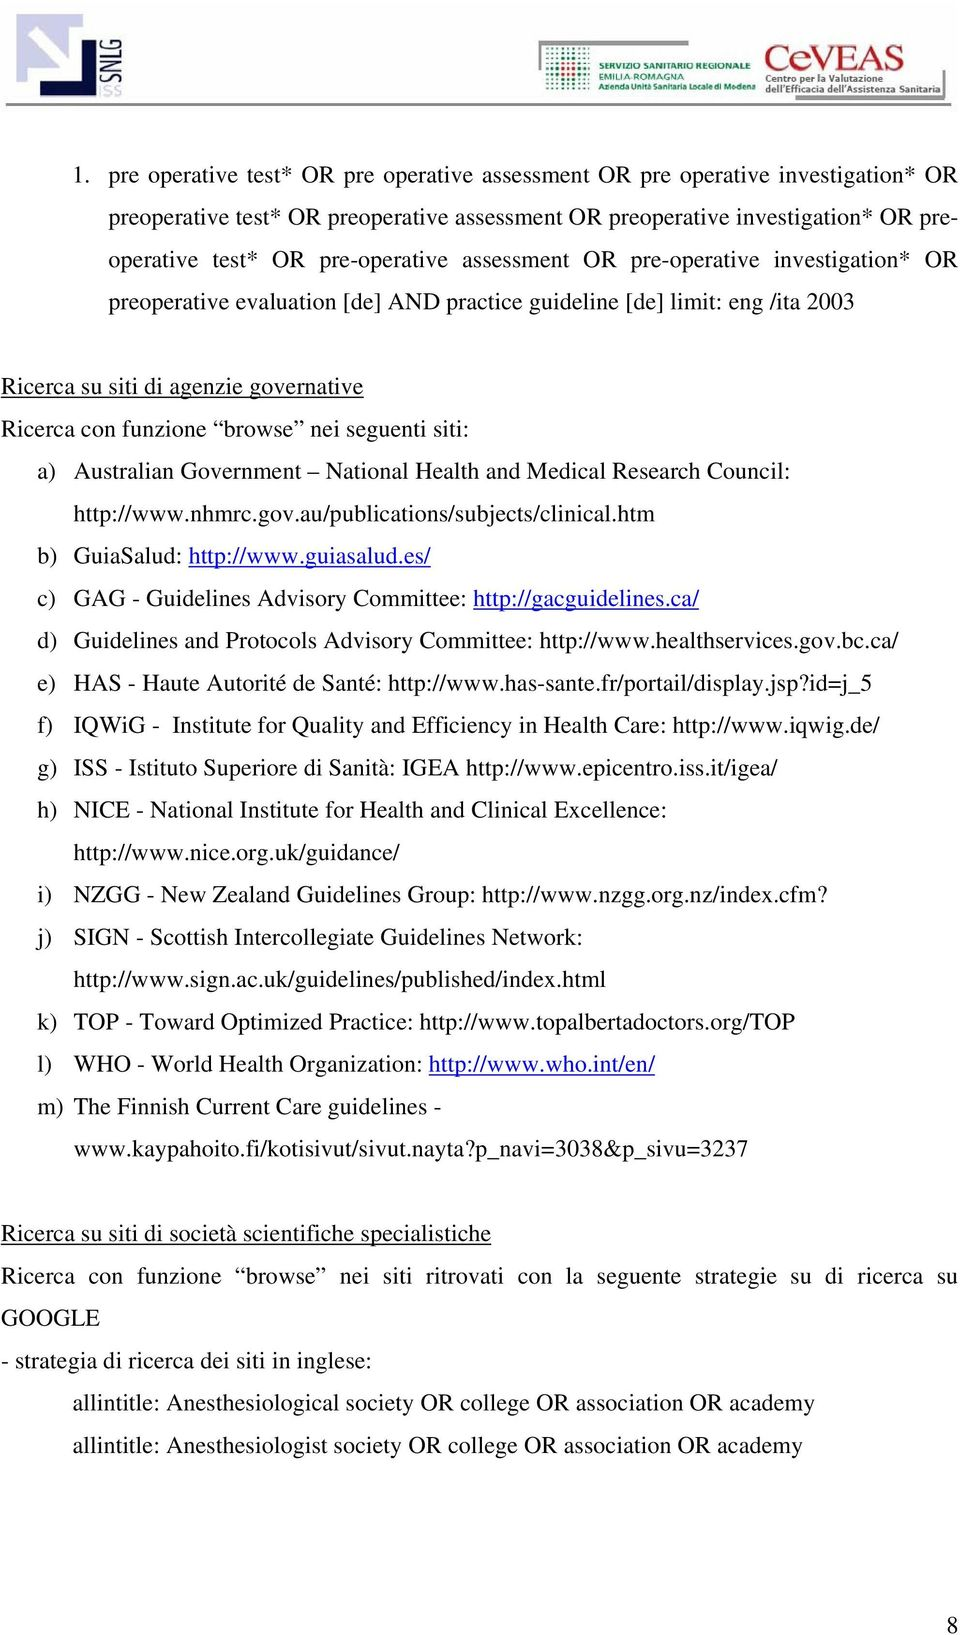 browse nei seguenti siti: a) Australian Government National Health and Medical Research Council: http://www.nhmrc.gov.au/publications/subjects/clinical.htm b) GuiaSalud: http://www.guiasalud.